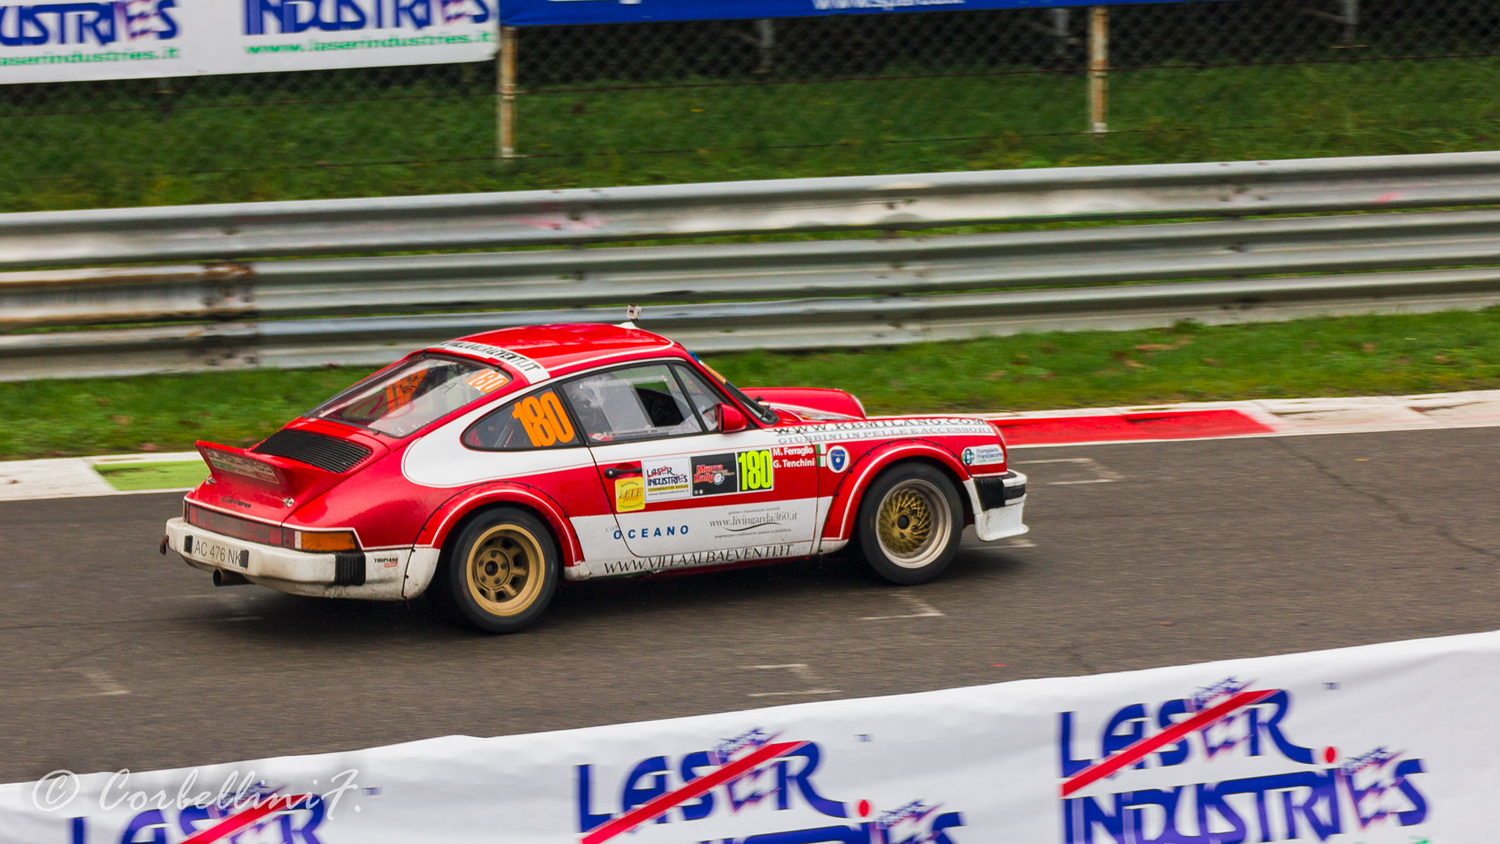 rally of monza - photo#30